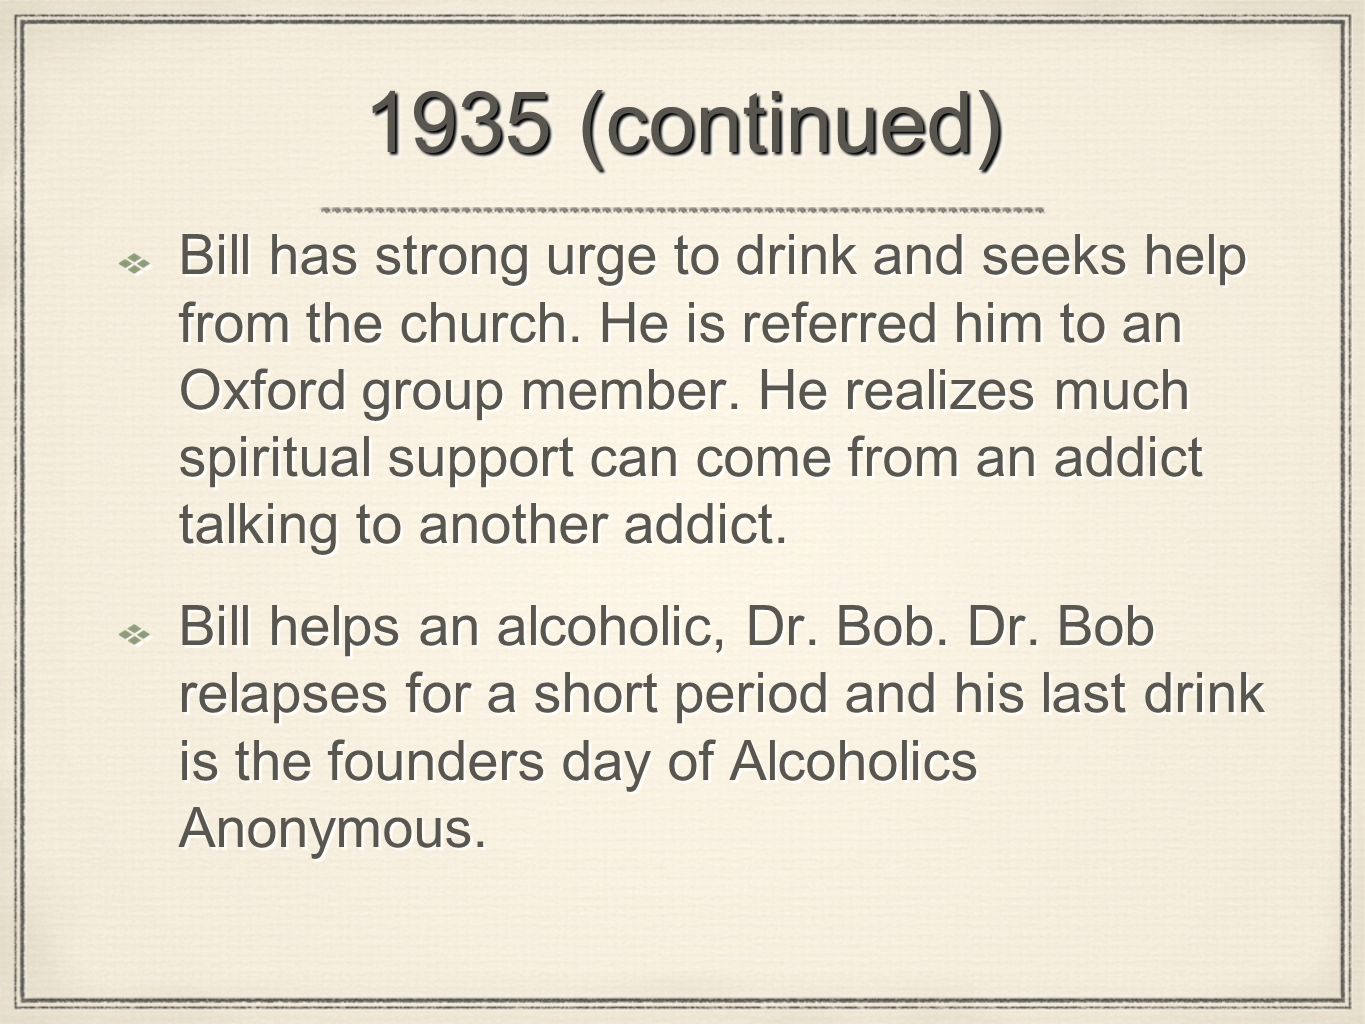 1935 (continued) Bill has strong urge to drink and seeks help from the church. He is referred him to an Oxford group member. He realizes much spiritua